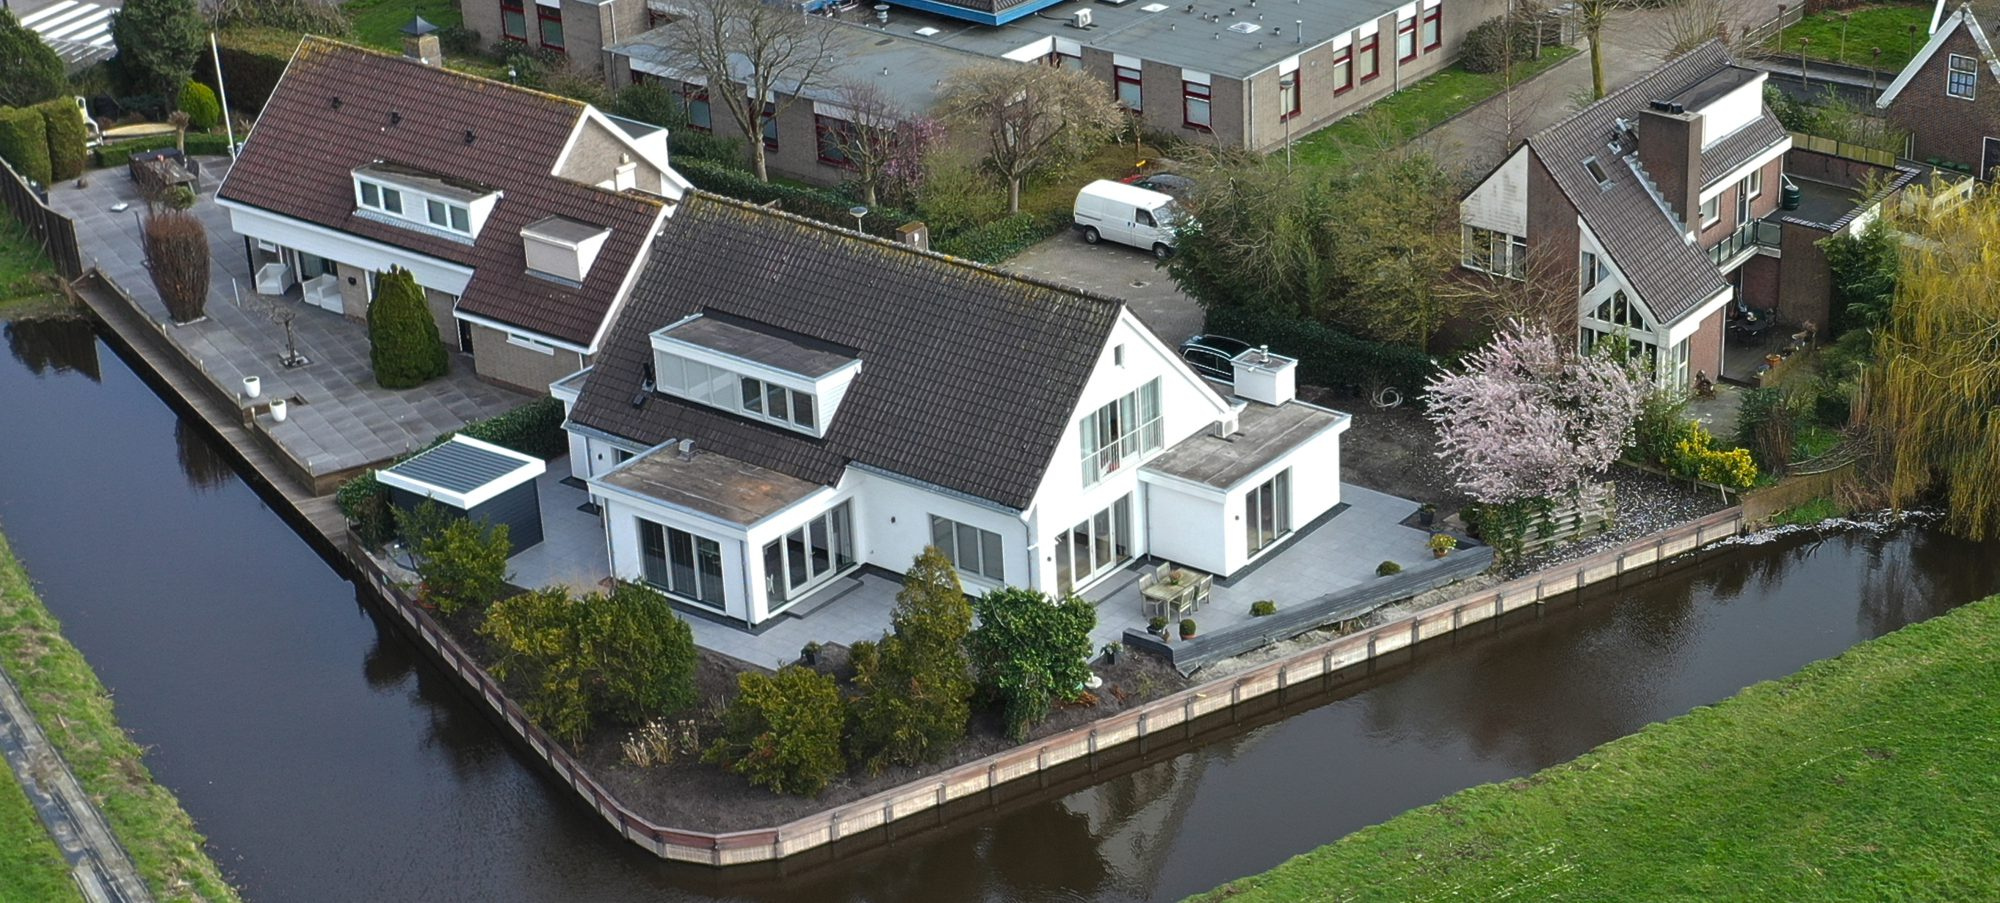 Fotocopter Luchtfotografie